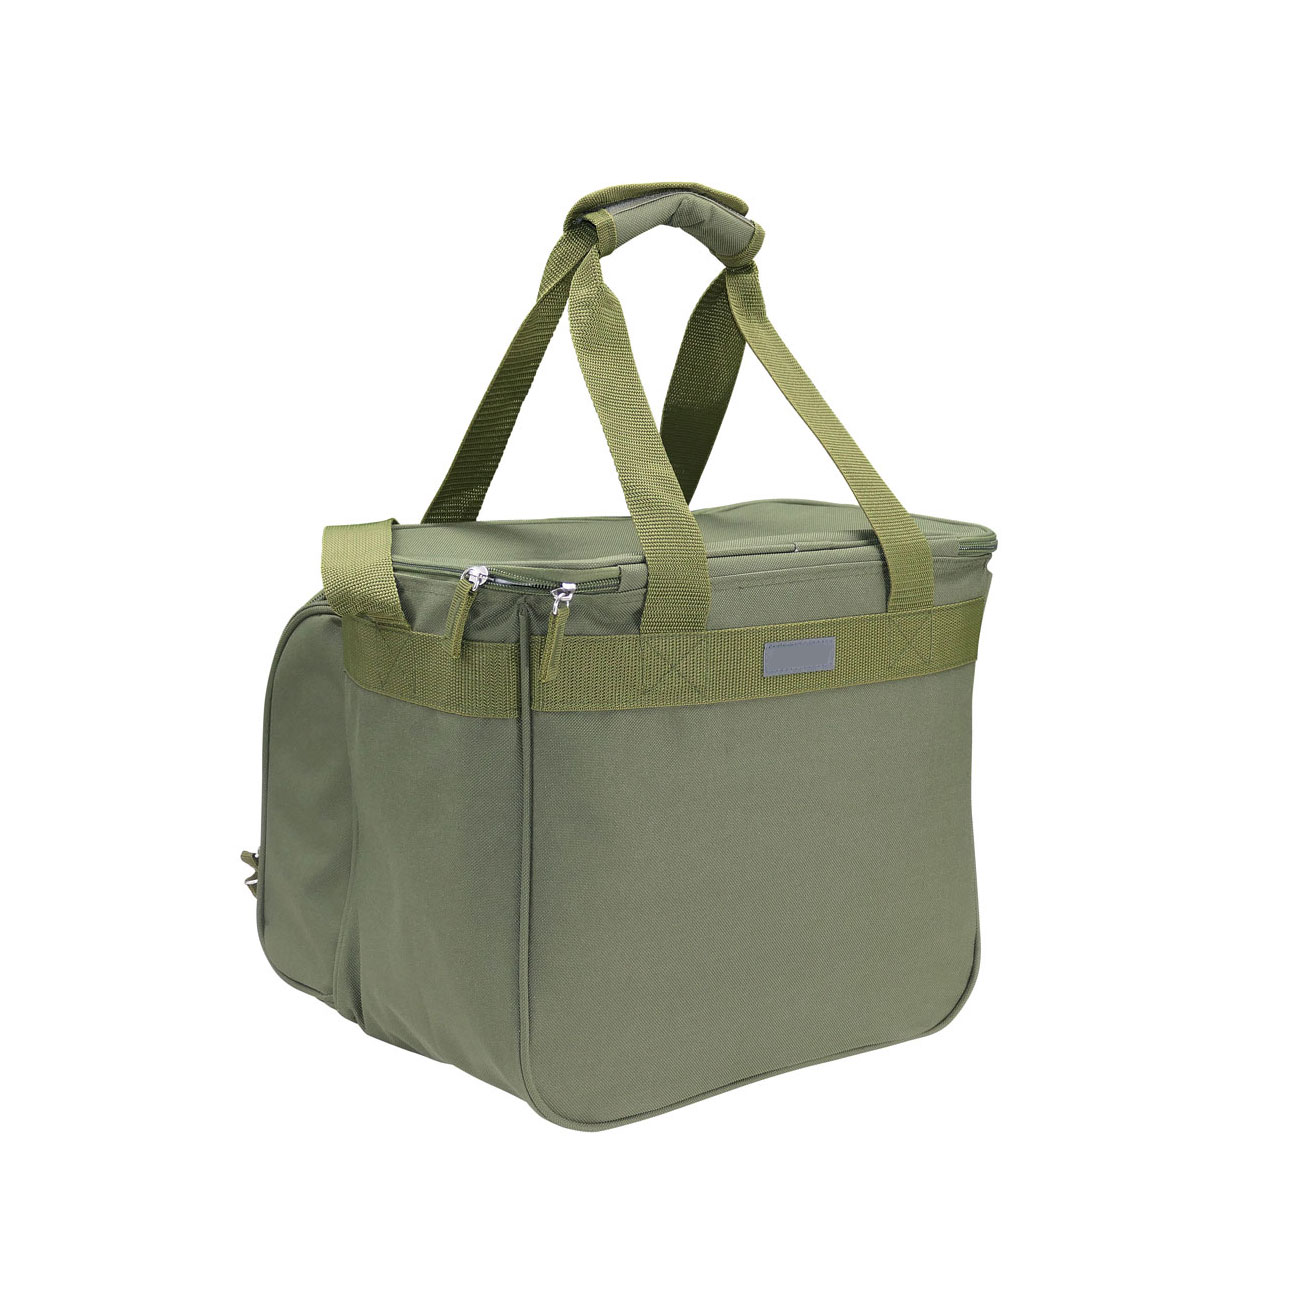 Commando Industries Kühltasche Cooler Bag 20 Liter mit Picknick-Set oliv 1